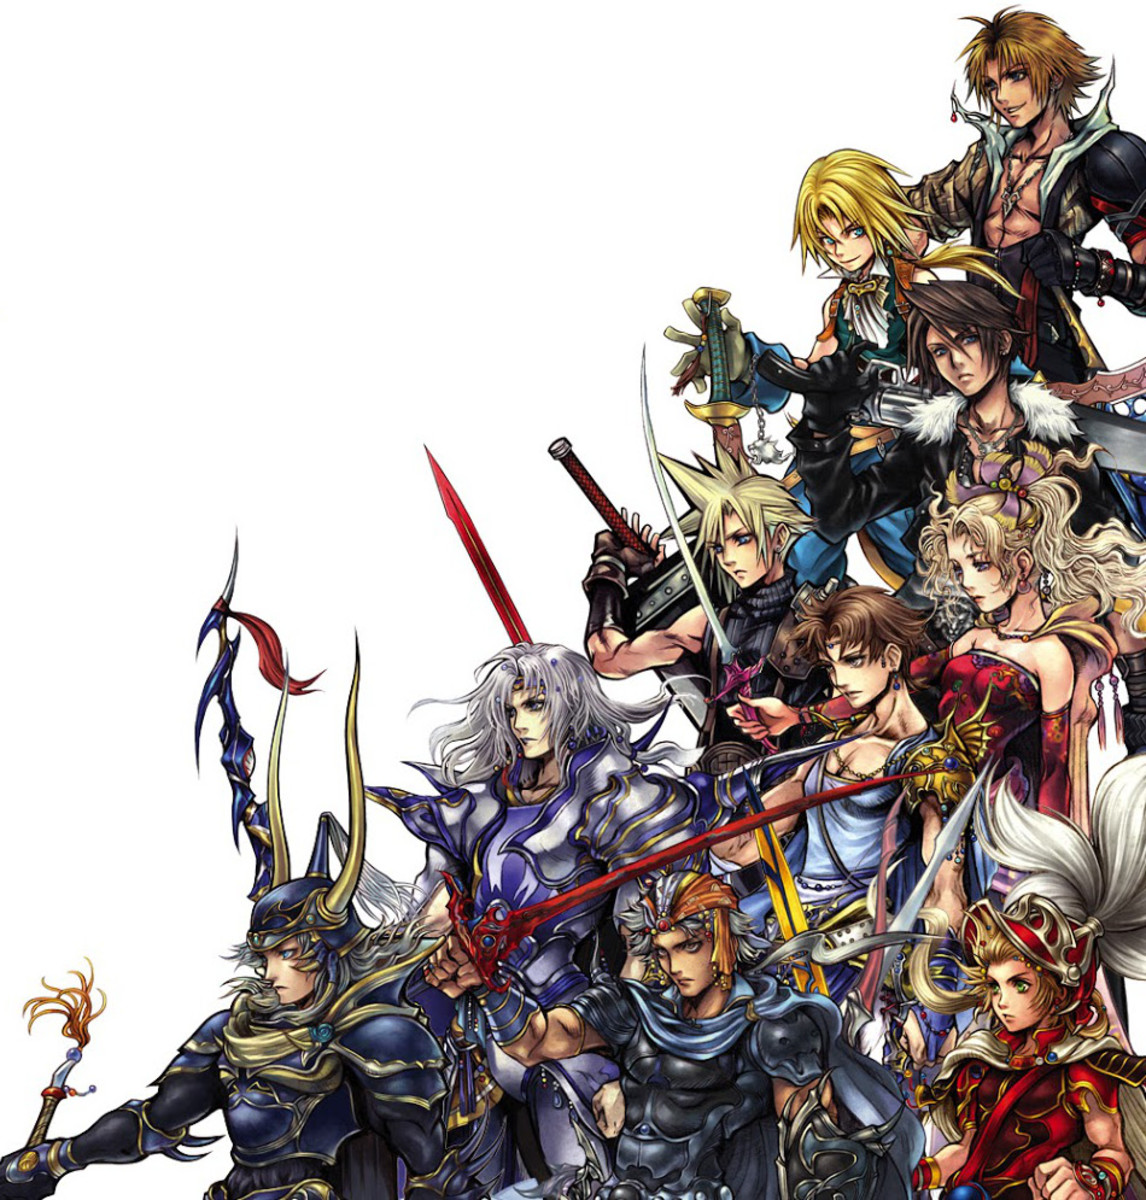 Final Fantasy: Which Hero Are You?